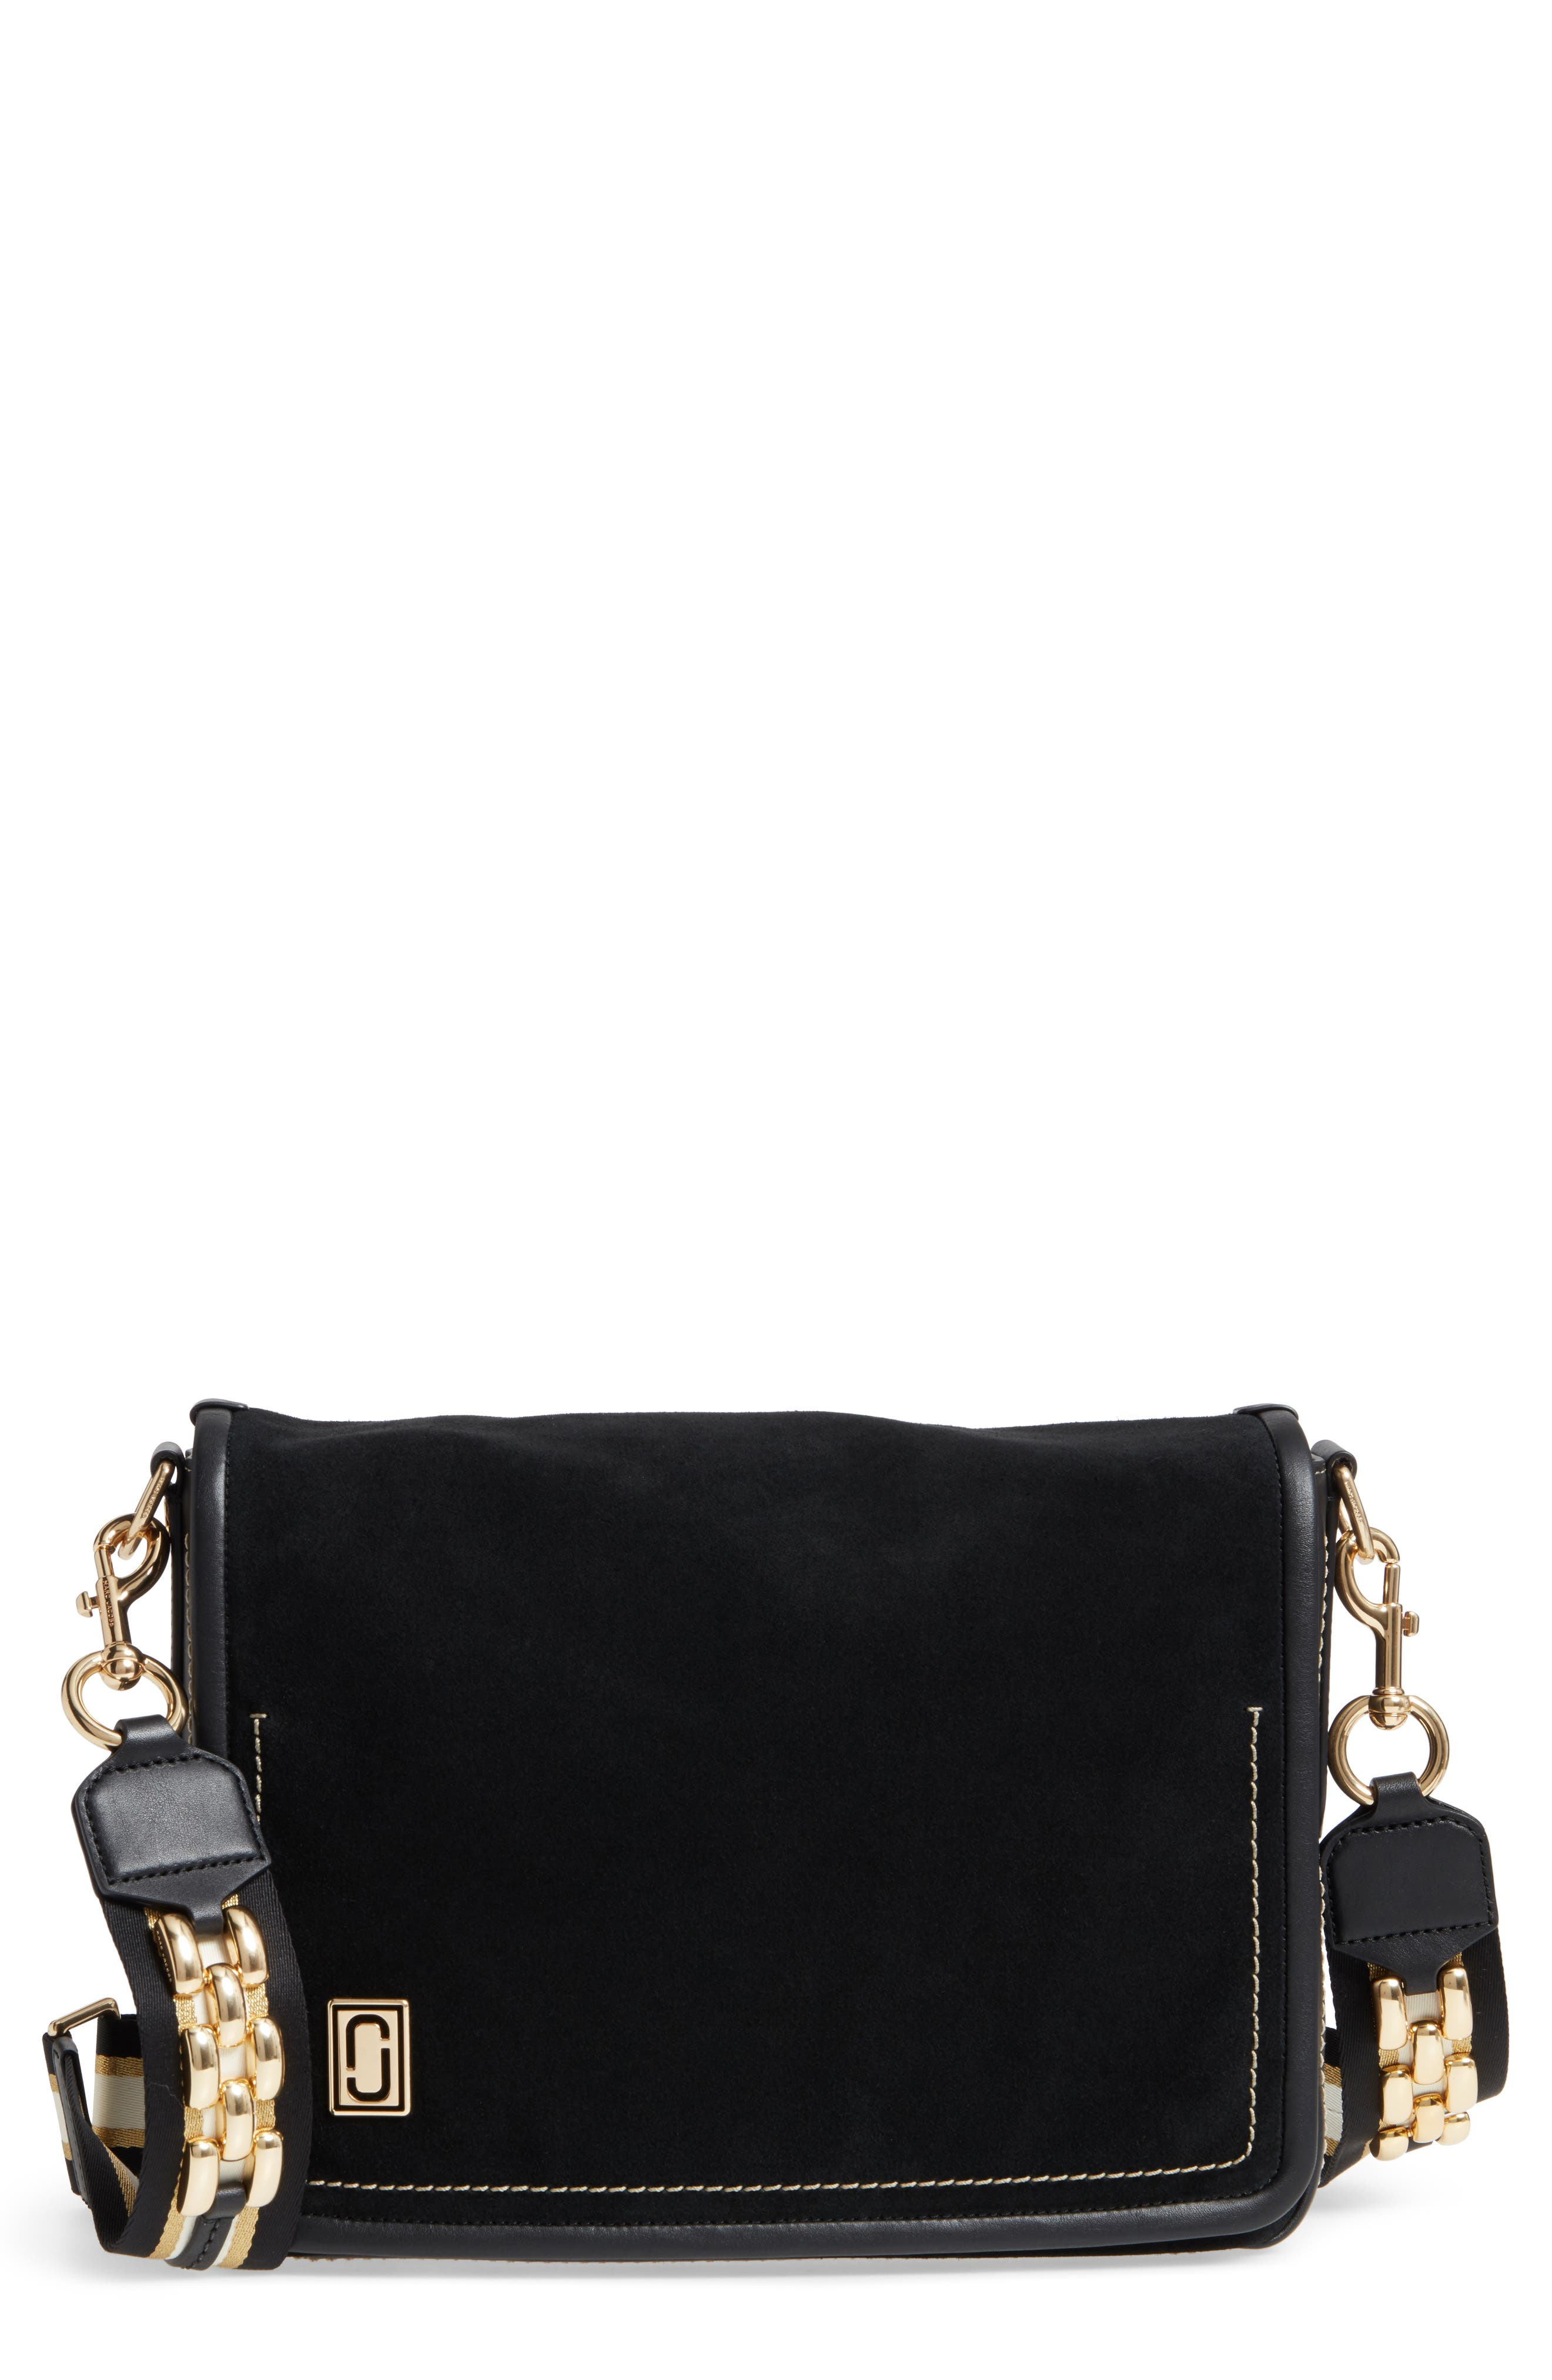 Main Image - MARC JACOBS The Squeeze Suede Shoulder Bag